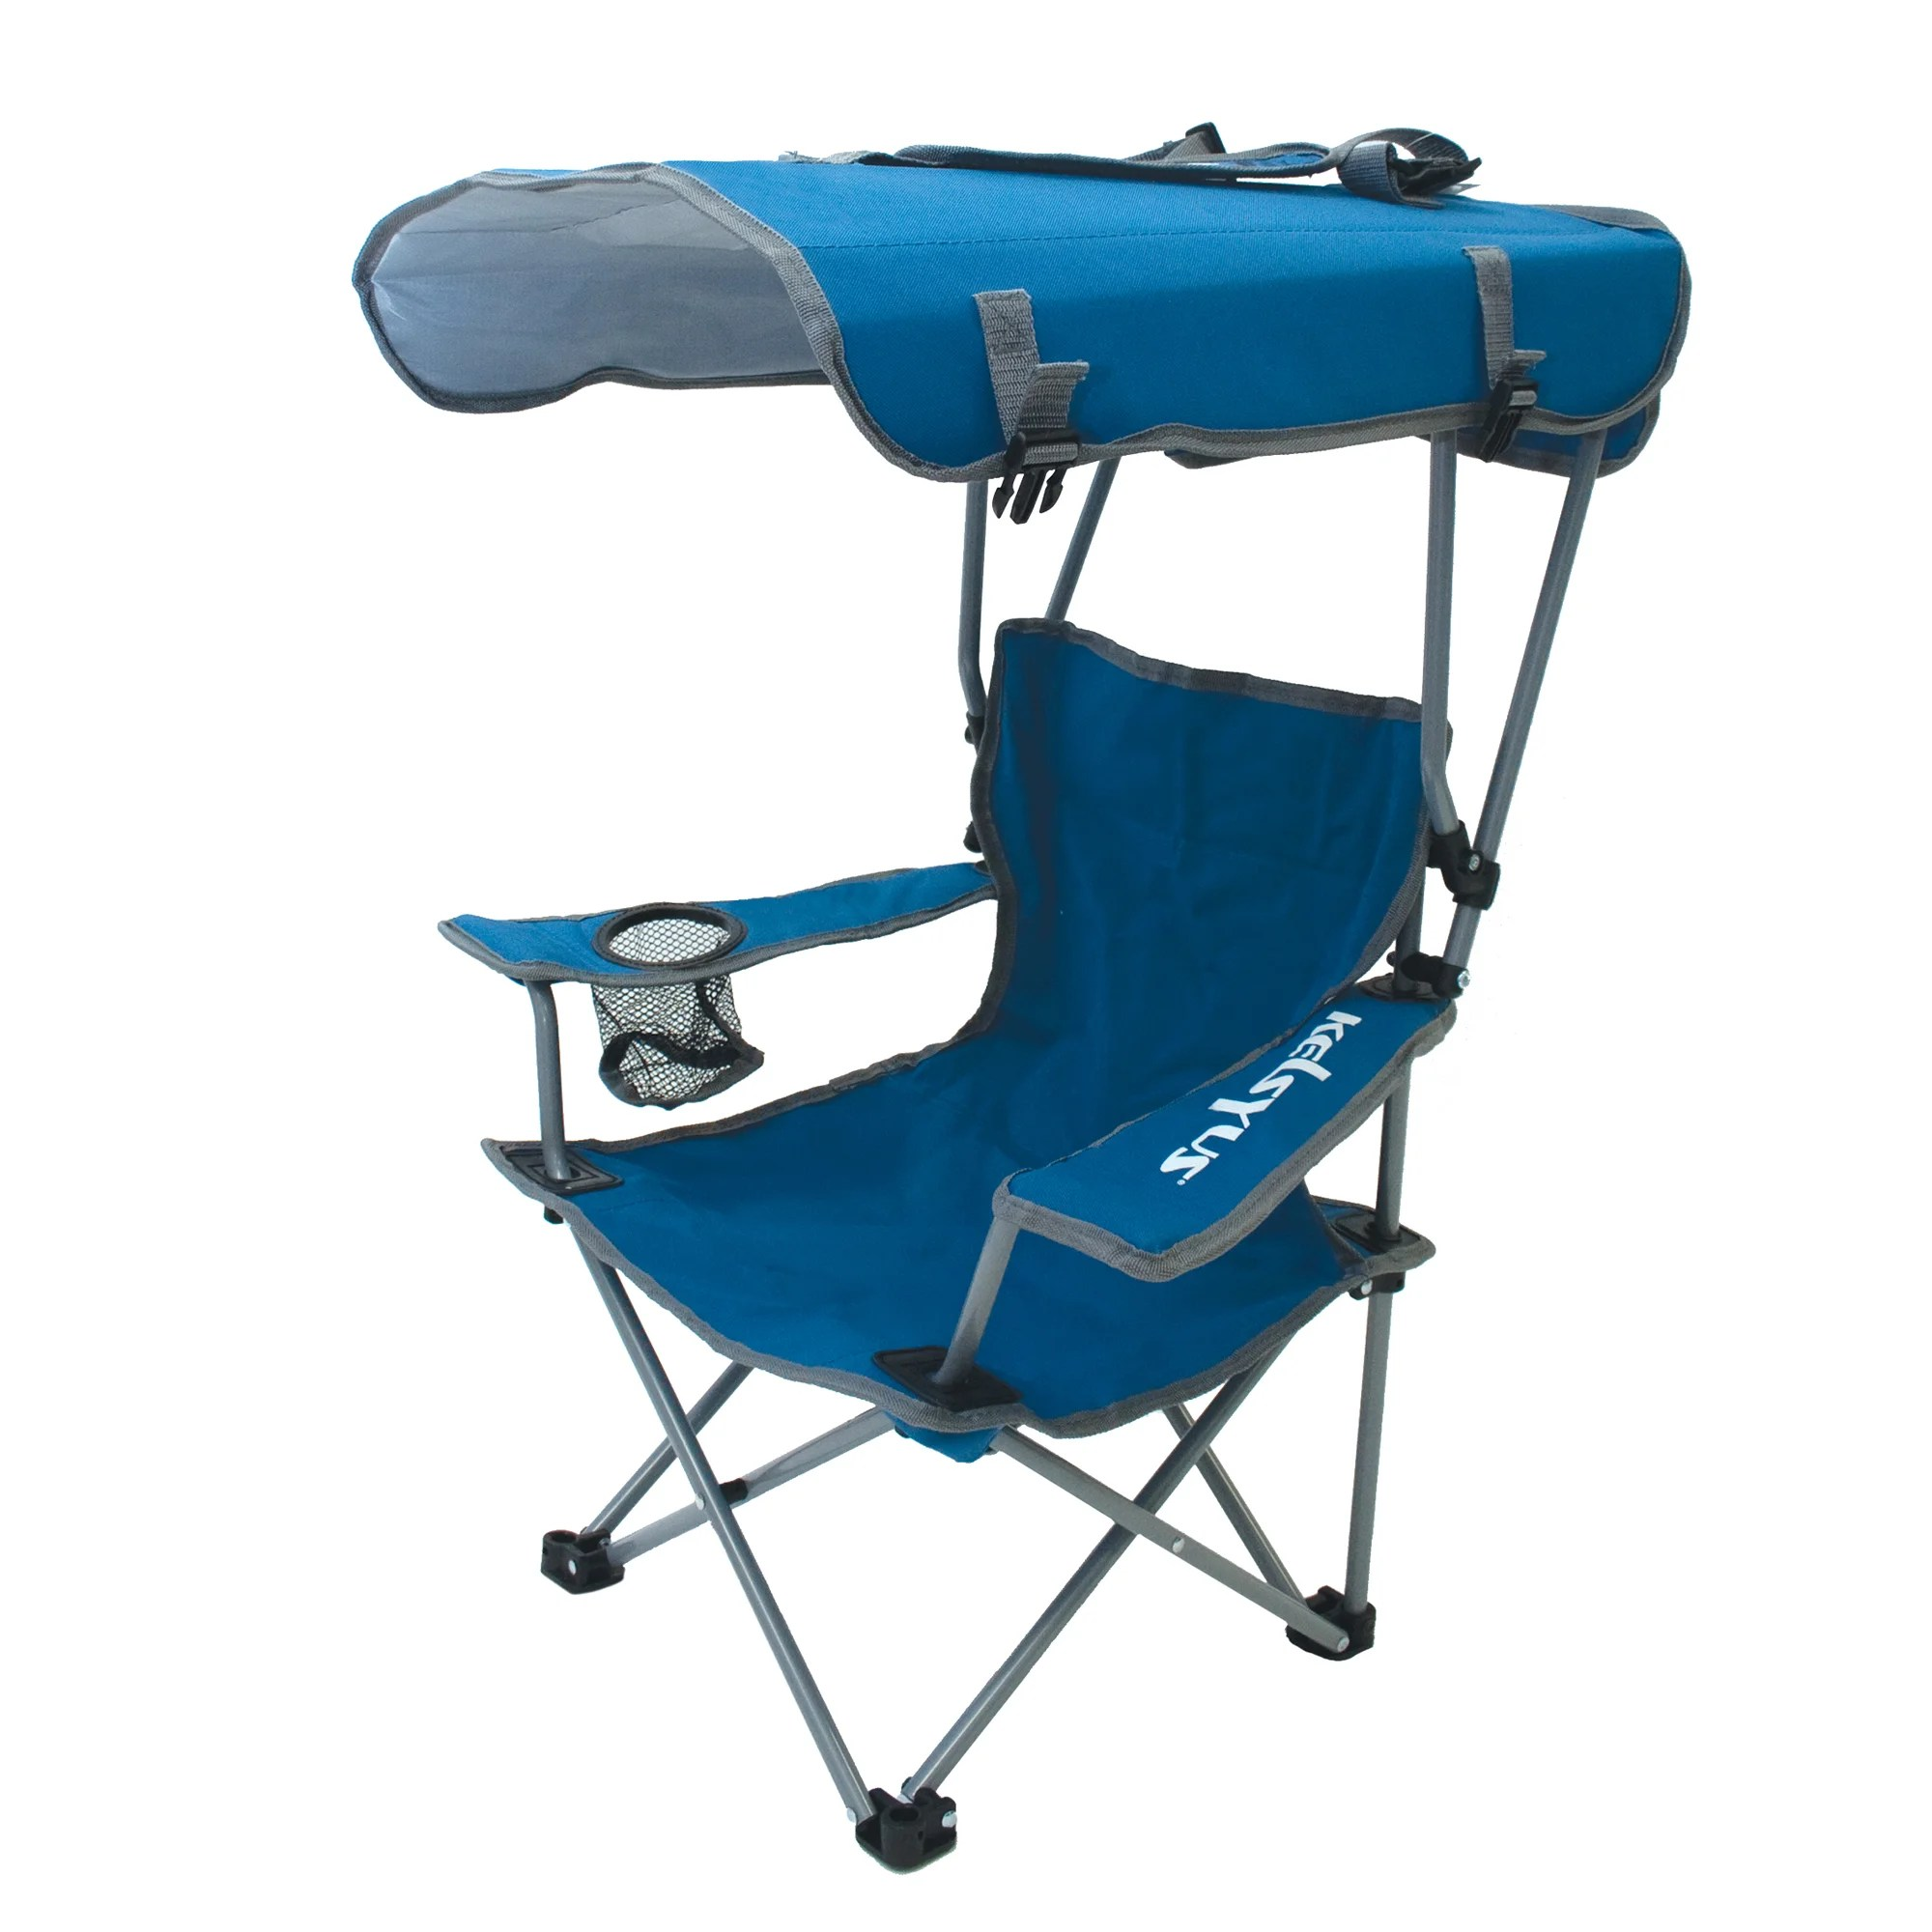 Camping Chairs With Canopy Brand New Kid 39s Canopy Chair Good Portable Outdoor